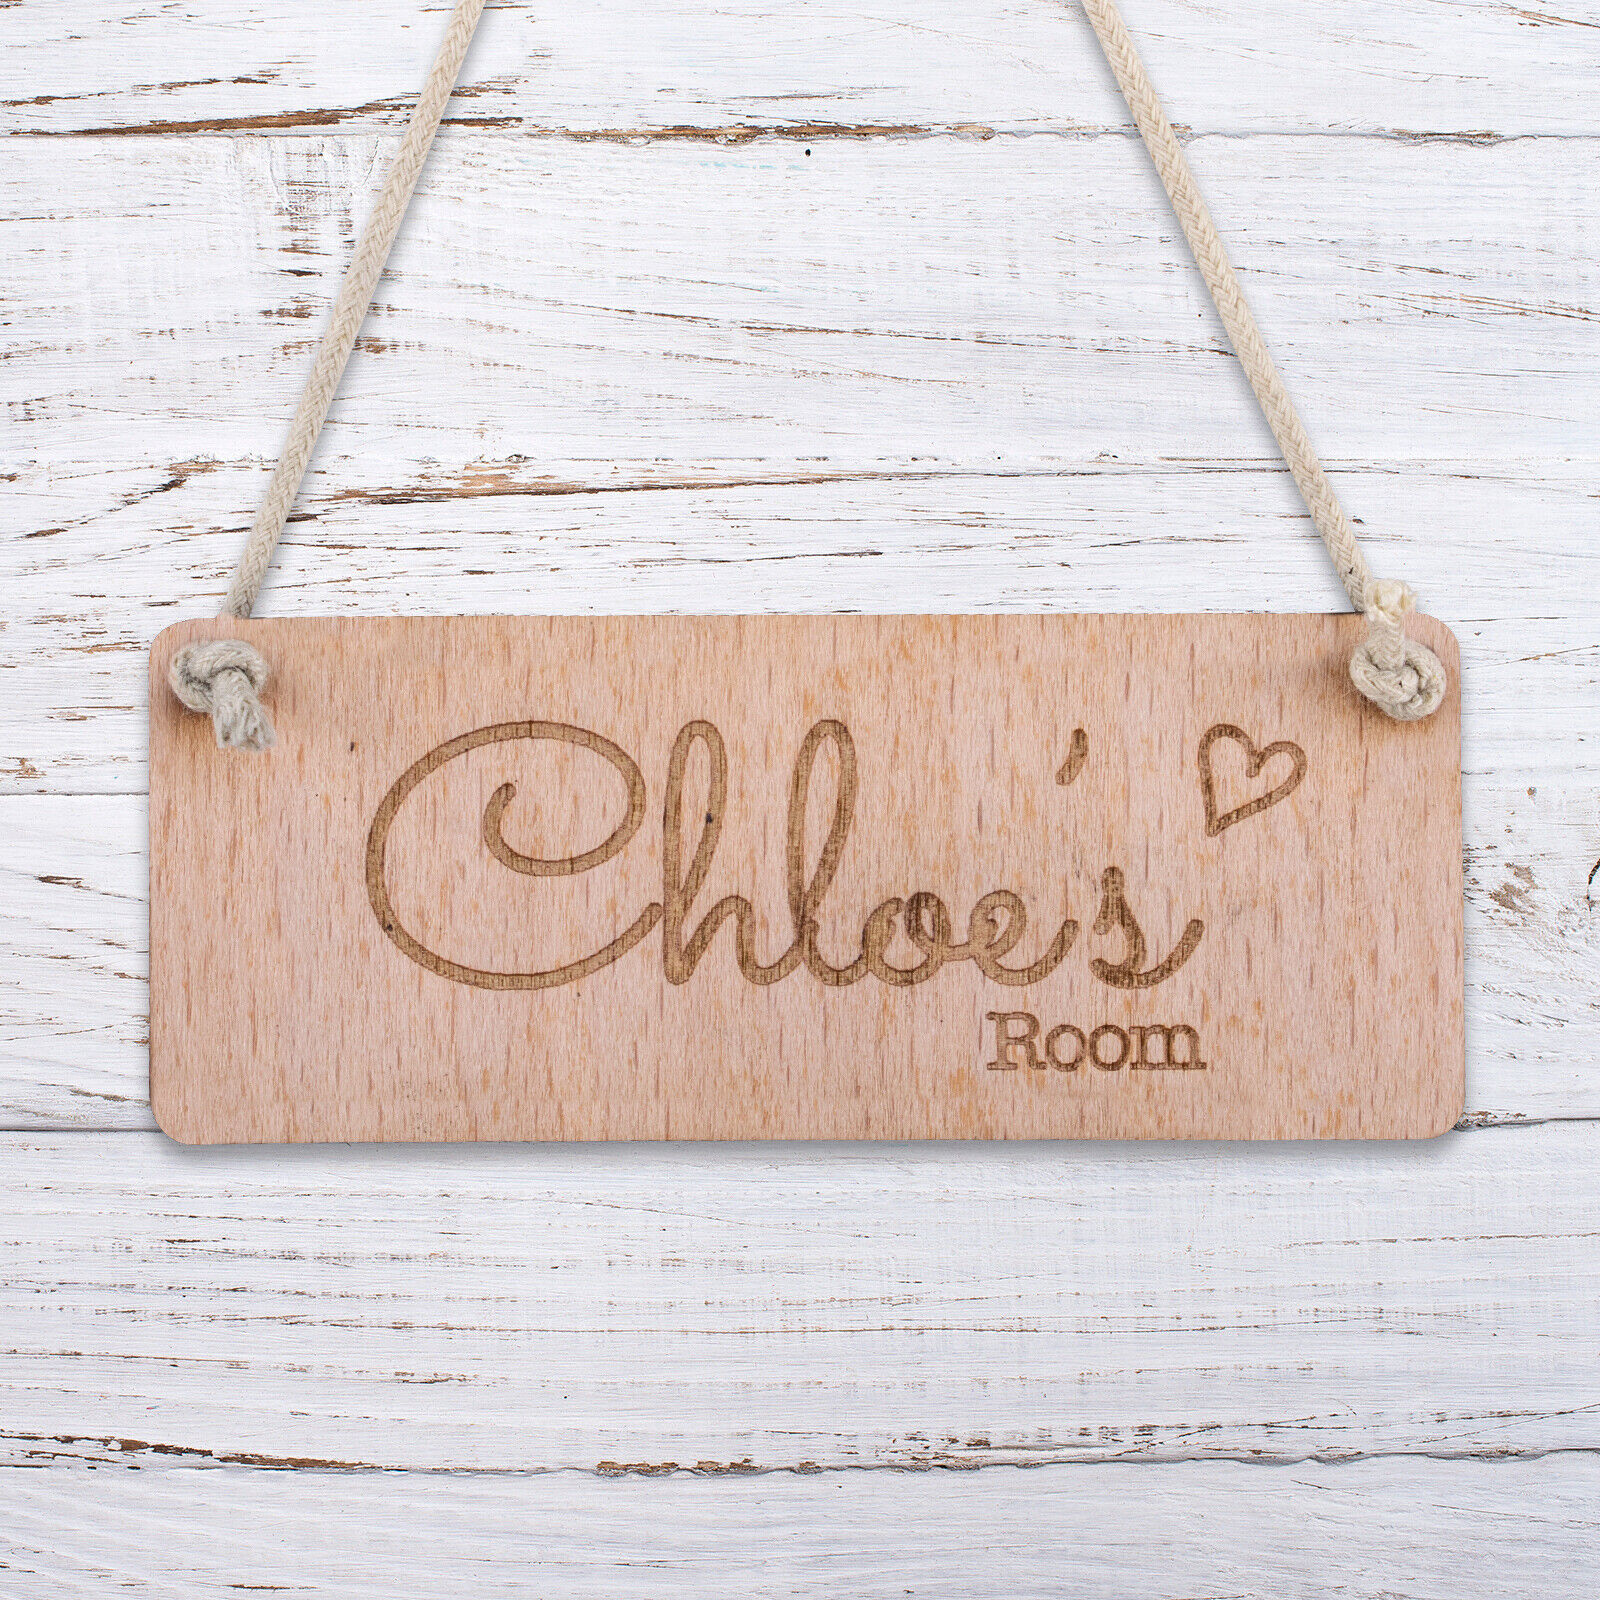 Details about Personalised Wooden Door Signs Shabby Chic Hanging Plaques  Custom Name Date